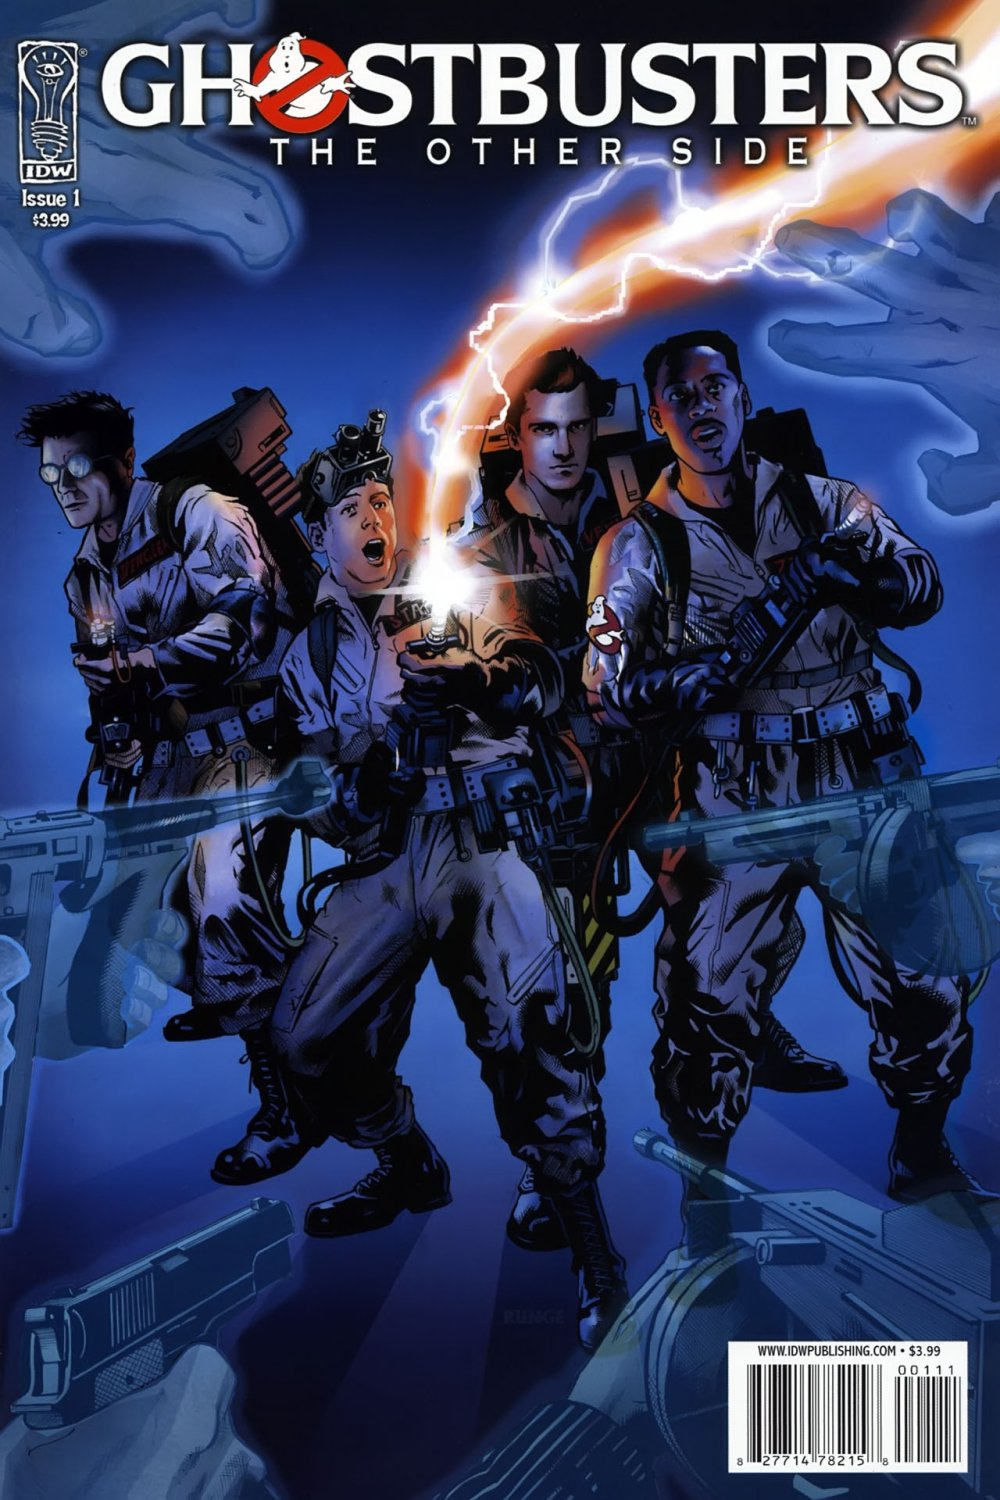 Ghostbusters: The Other Side 0001.jpg